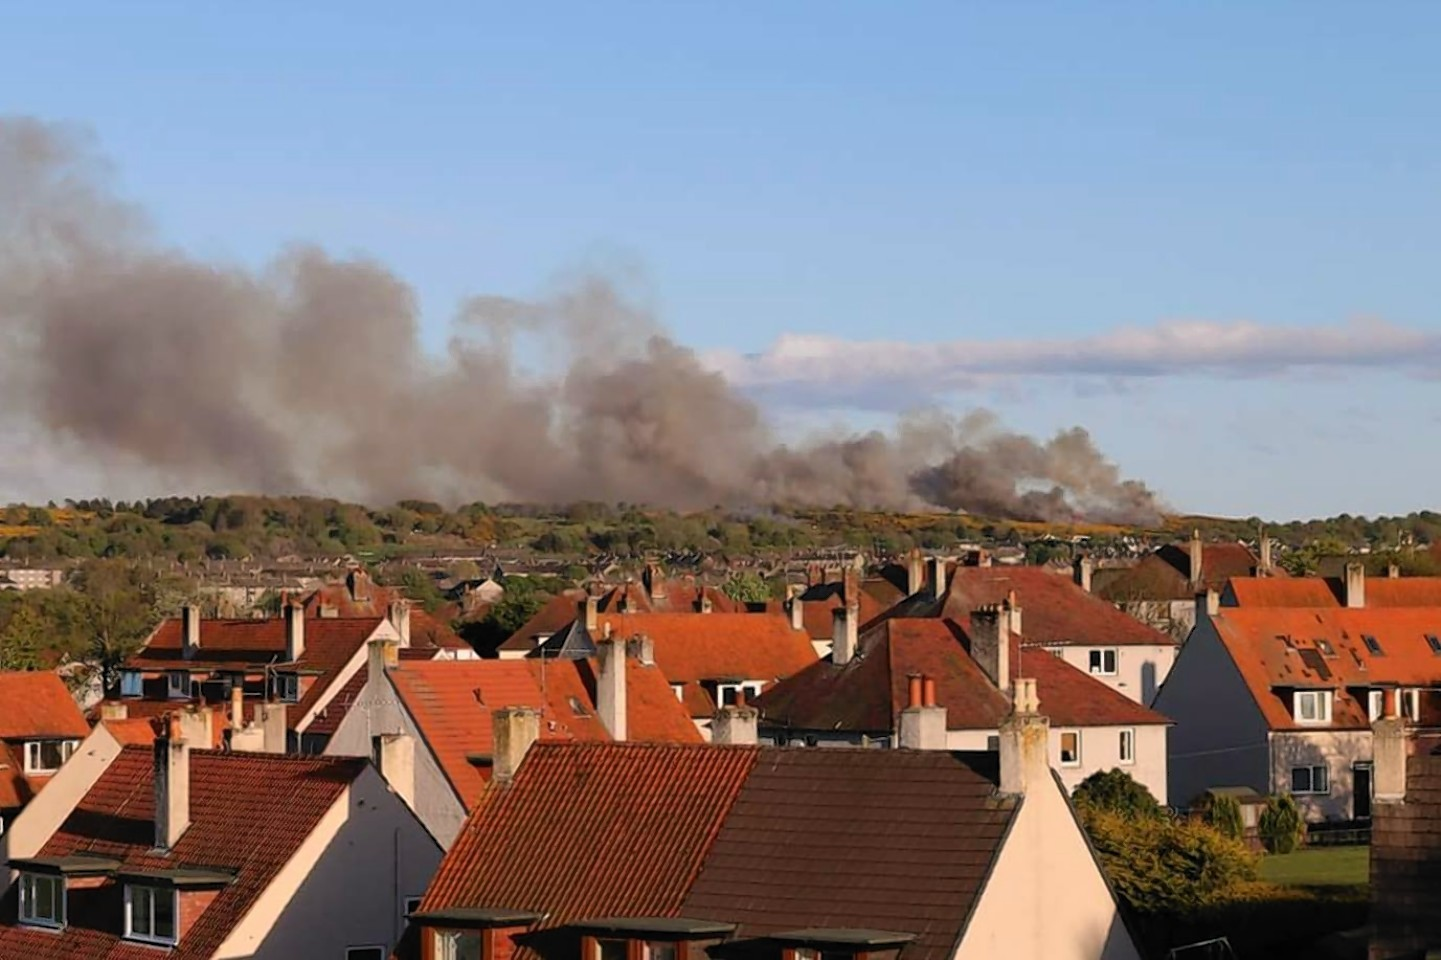 THE massive grass fire in Aberdeen was seen from all over the city and beyond. Picture by Richard Sutherland